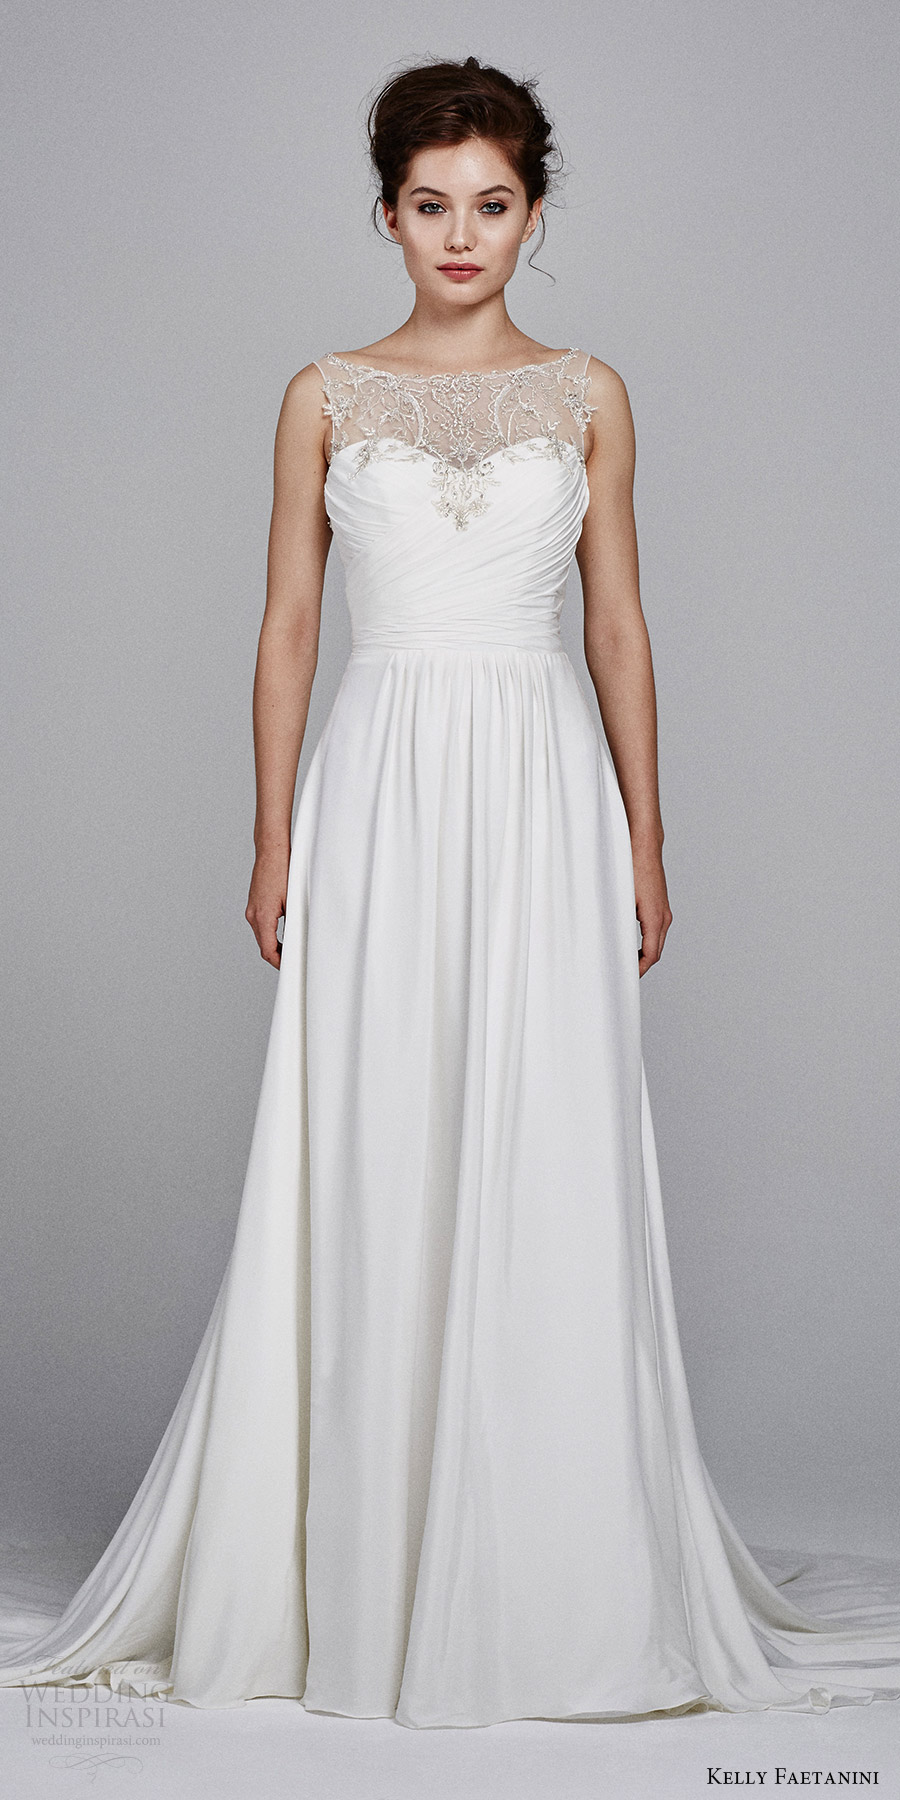 kelly faetanini bridal fall 2017 sleeveless illusion bateau sweetheart aline wedding dress (ren) mv